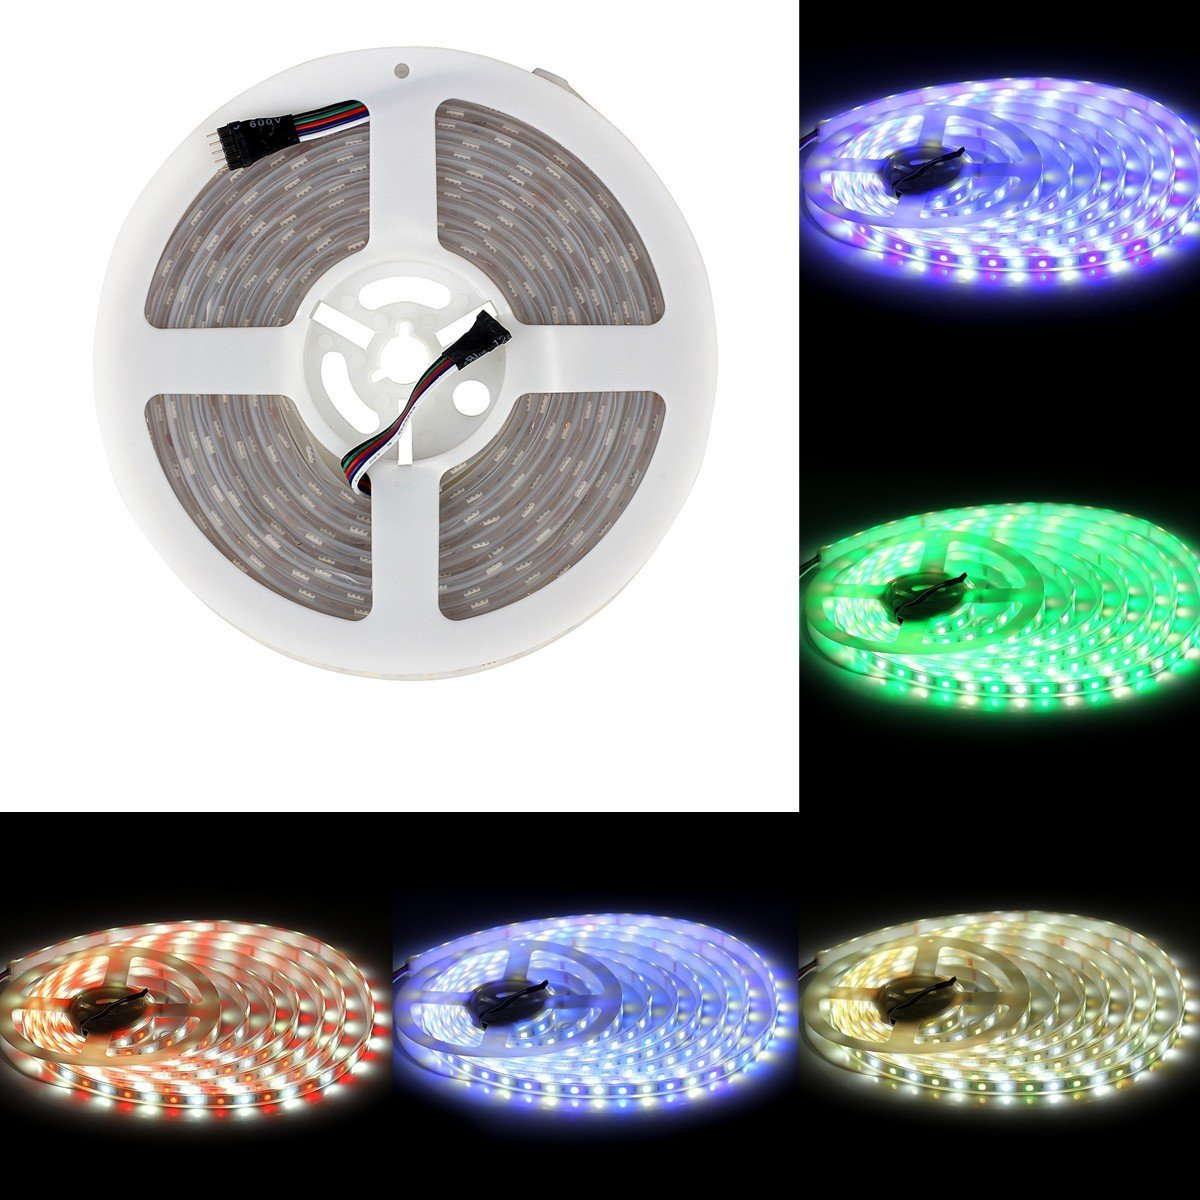 BZONE DC 12V RGB+Cool White RGBW LED Rope Light Flexible Waterproof Color Changing LED Strip Lights, 300 Units SMD 5050 LEDs, IP67 Waterproof, 5m 16.4FT